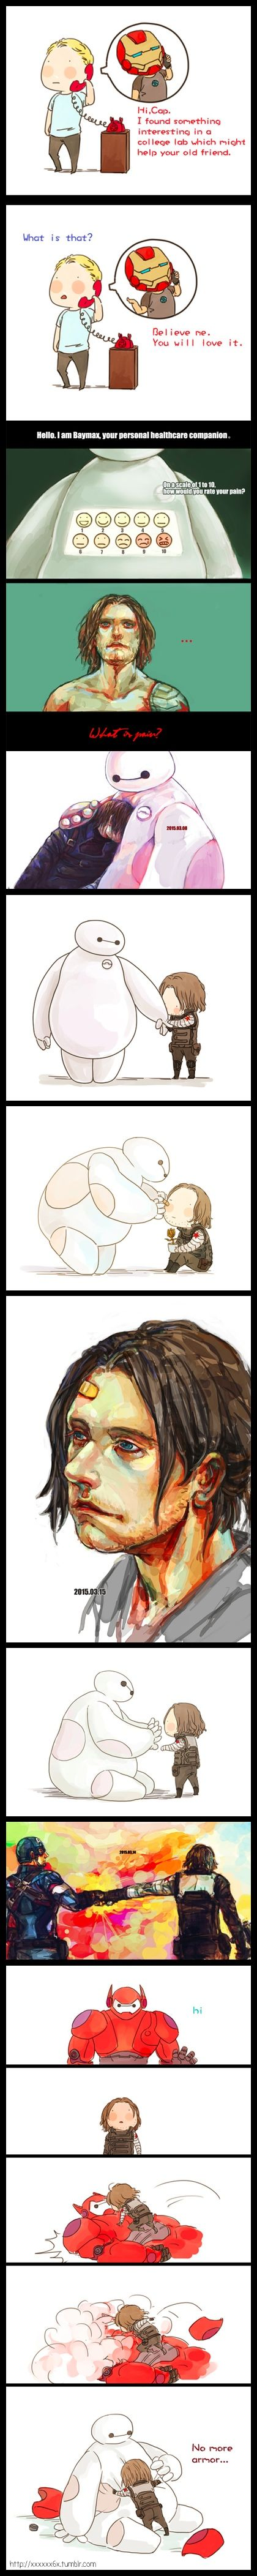 Bucky Barnes and Baymax || by xxxxxx6x || #fanart #crossover || See source link for animations!